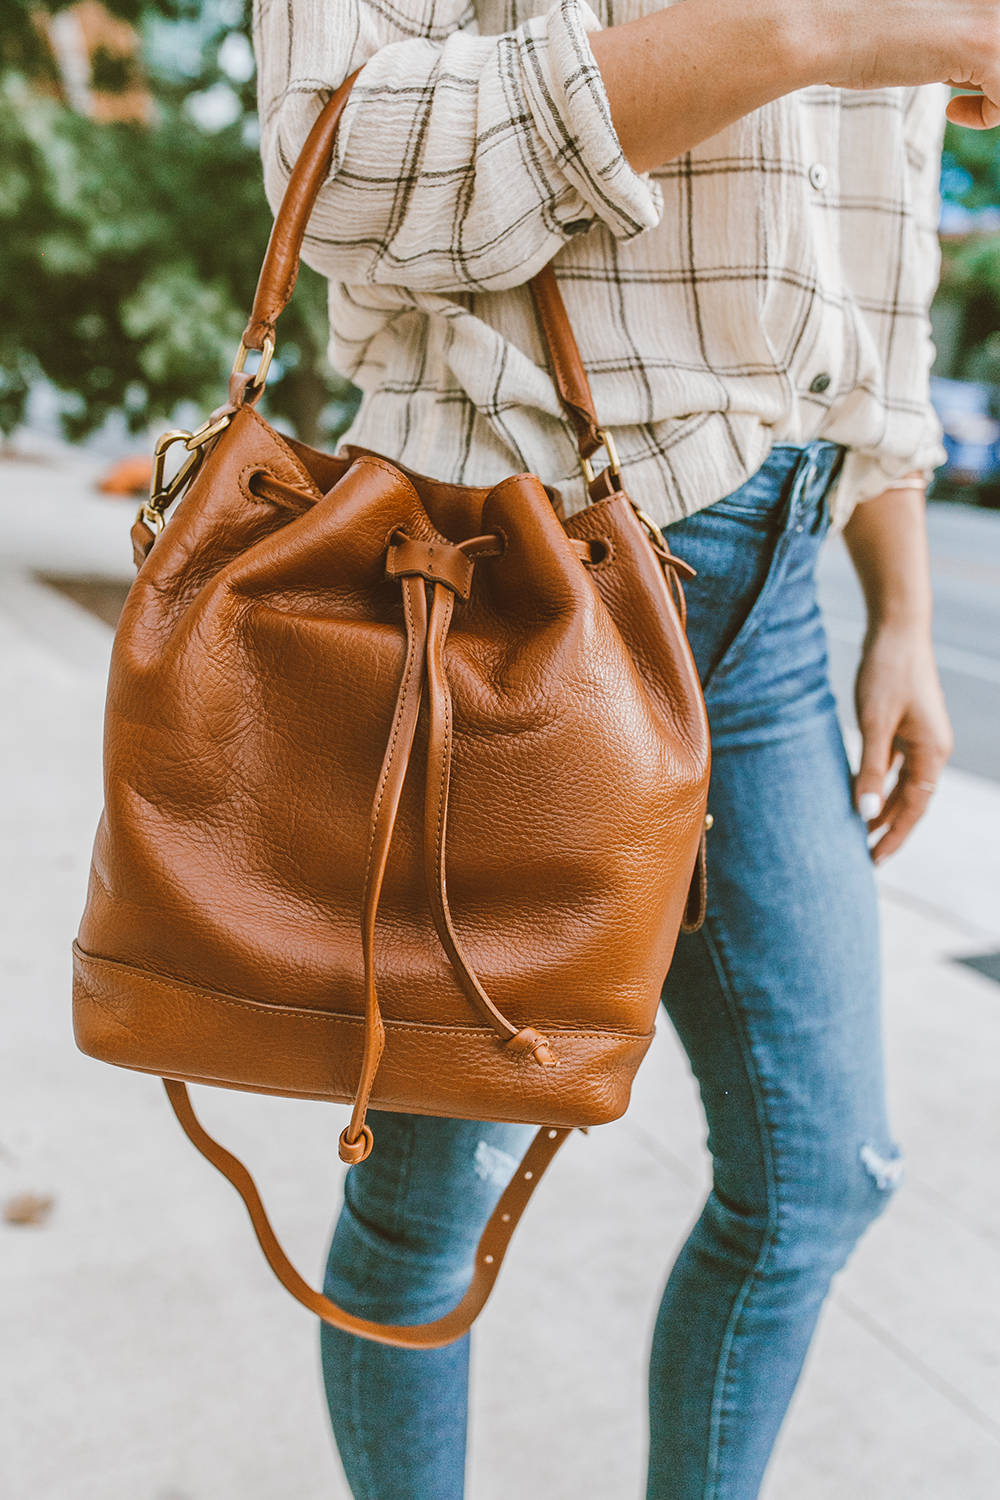 livvyland-blog-olivia-watson-austin-texas-fashion-style-blogger-nordstrom-anniversary-sale-4